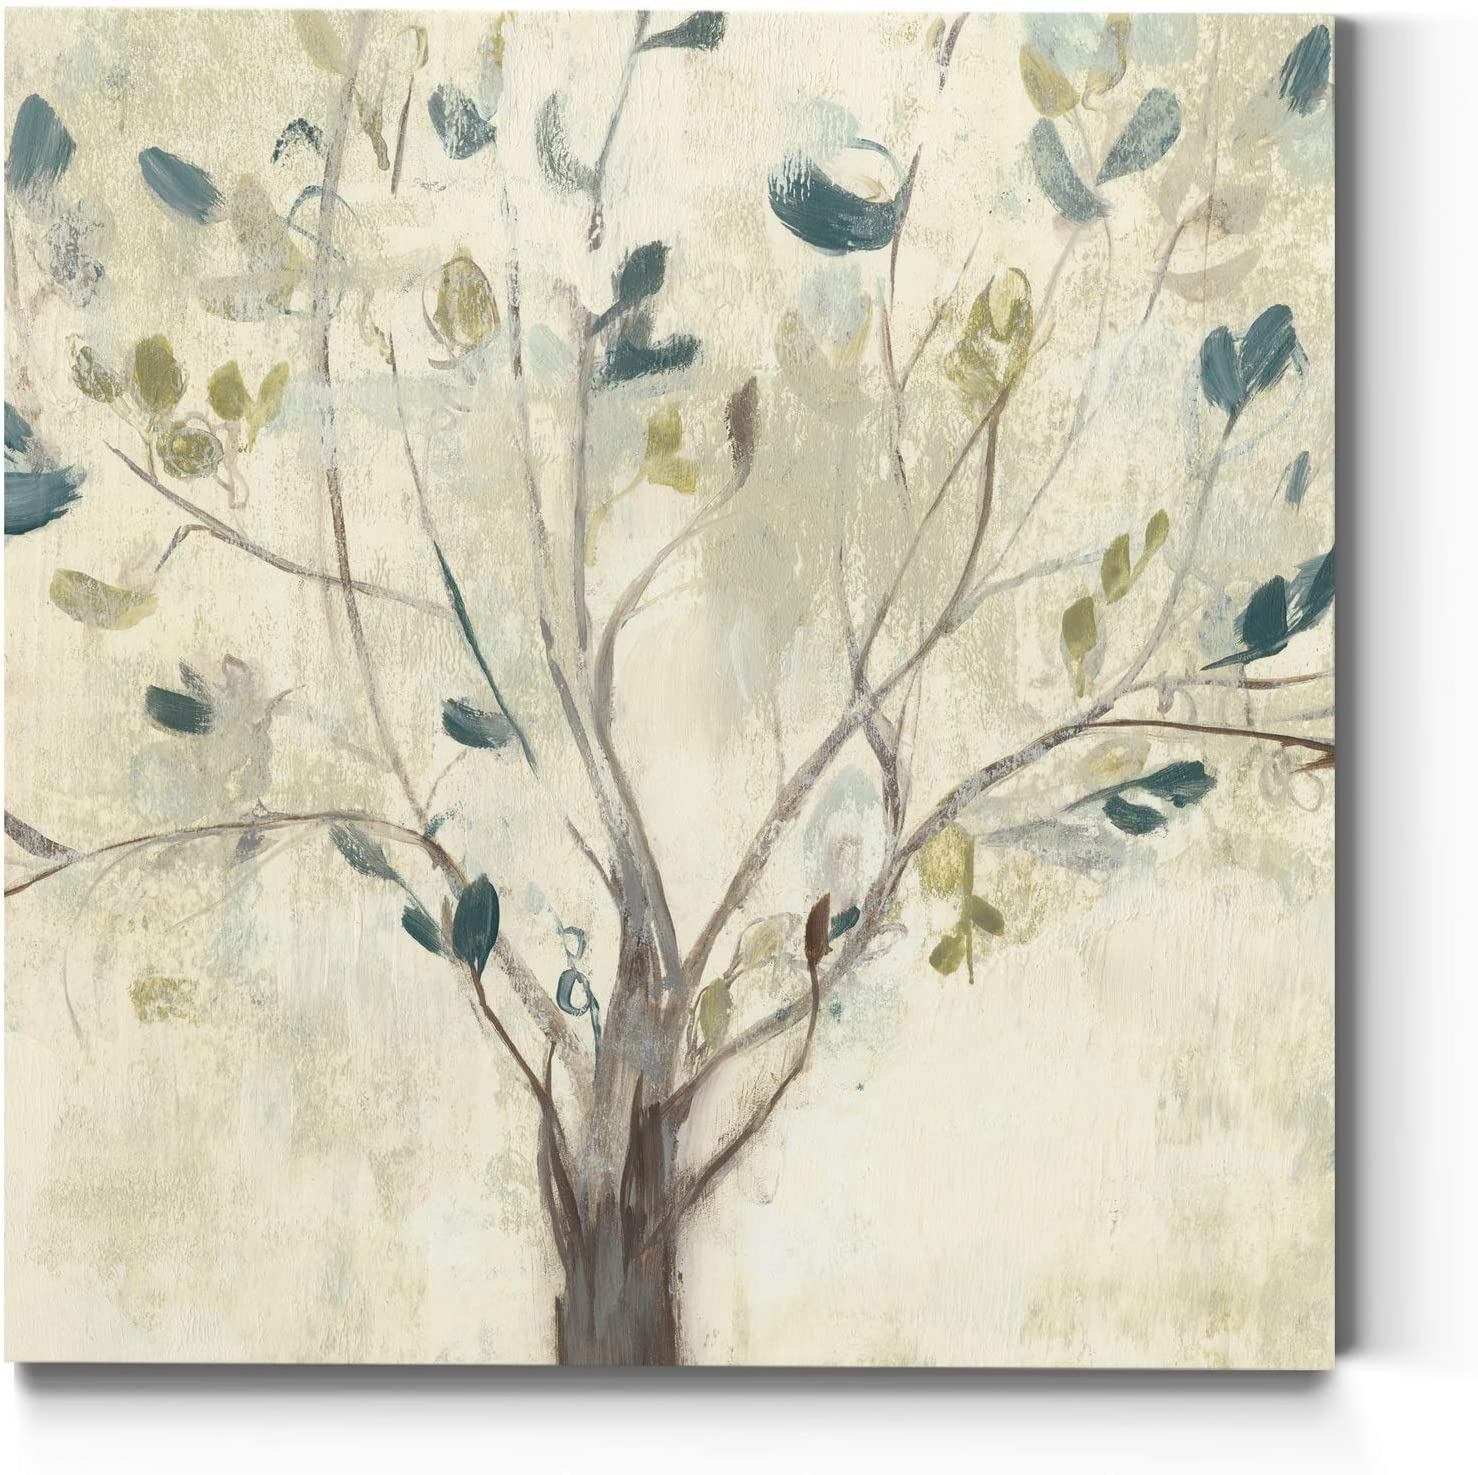 Neutral Color Wall Art, Wall Décor Canvas, Beaches, Floral, Animals, Bohemian, & Vintage Styles, Ready to Hang -Trees of Blue I 32X32